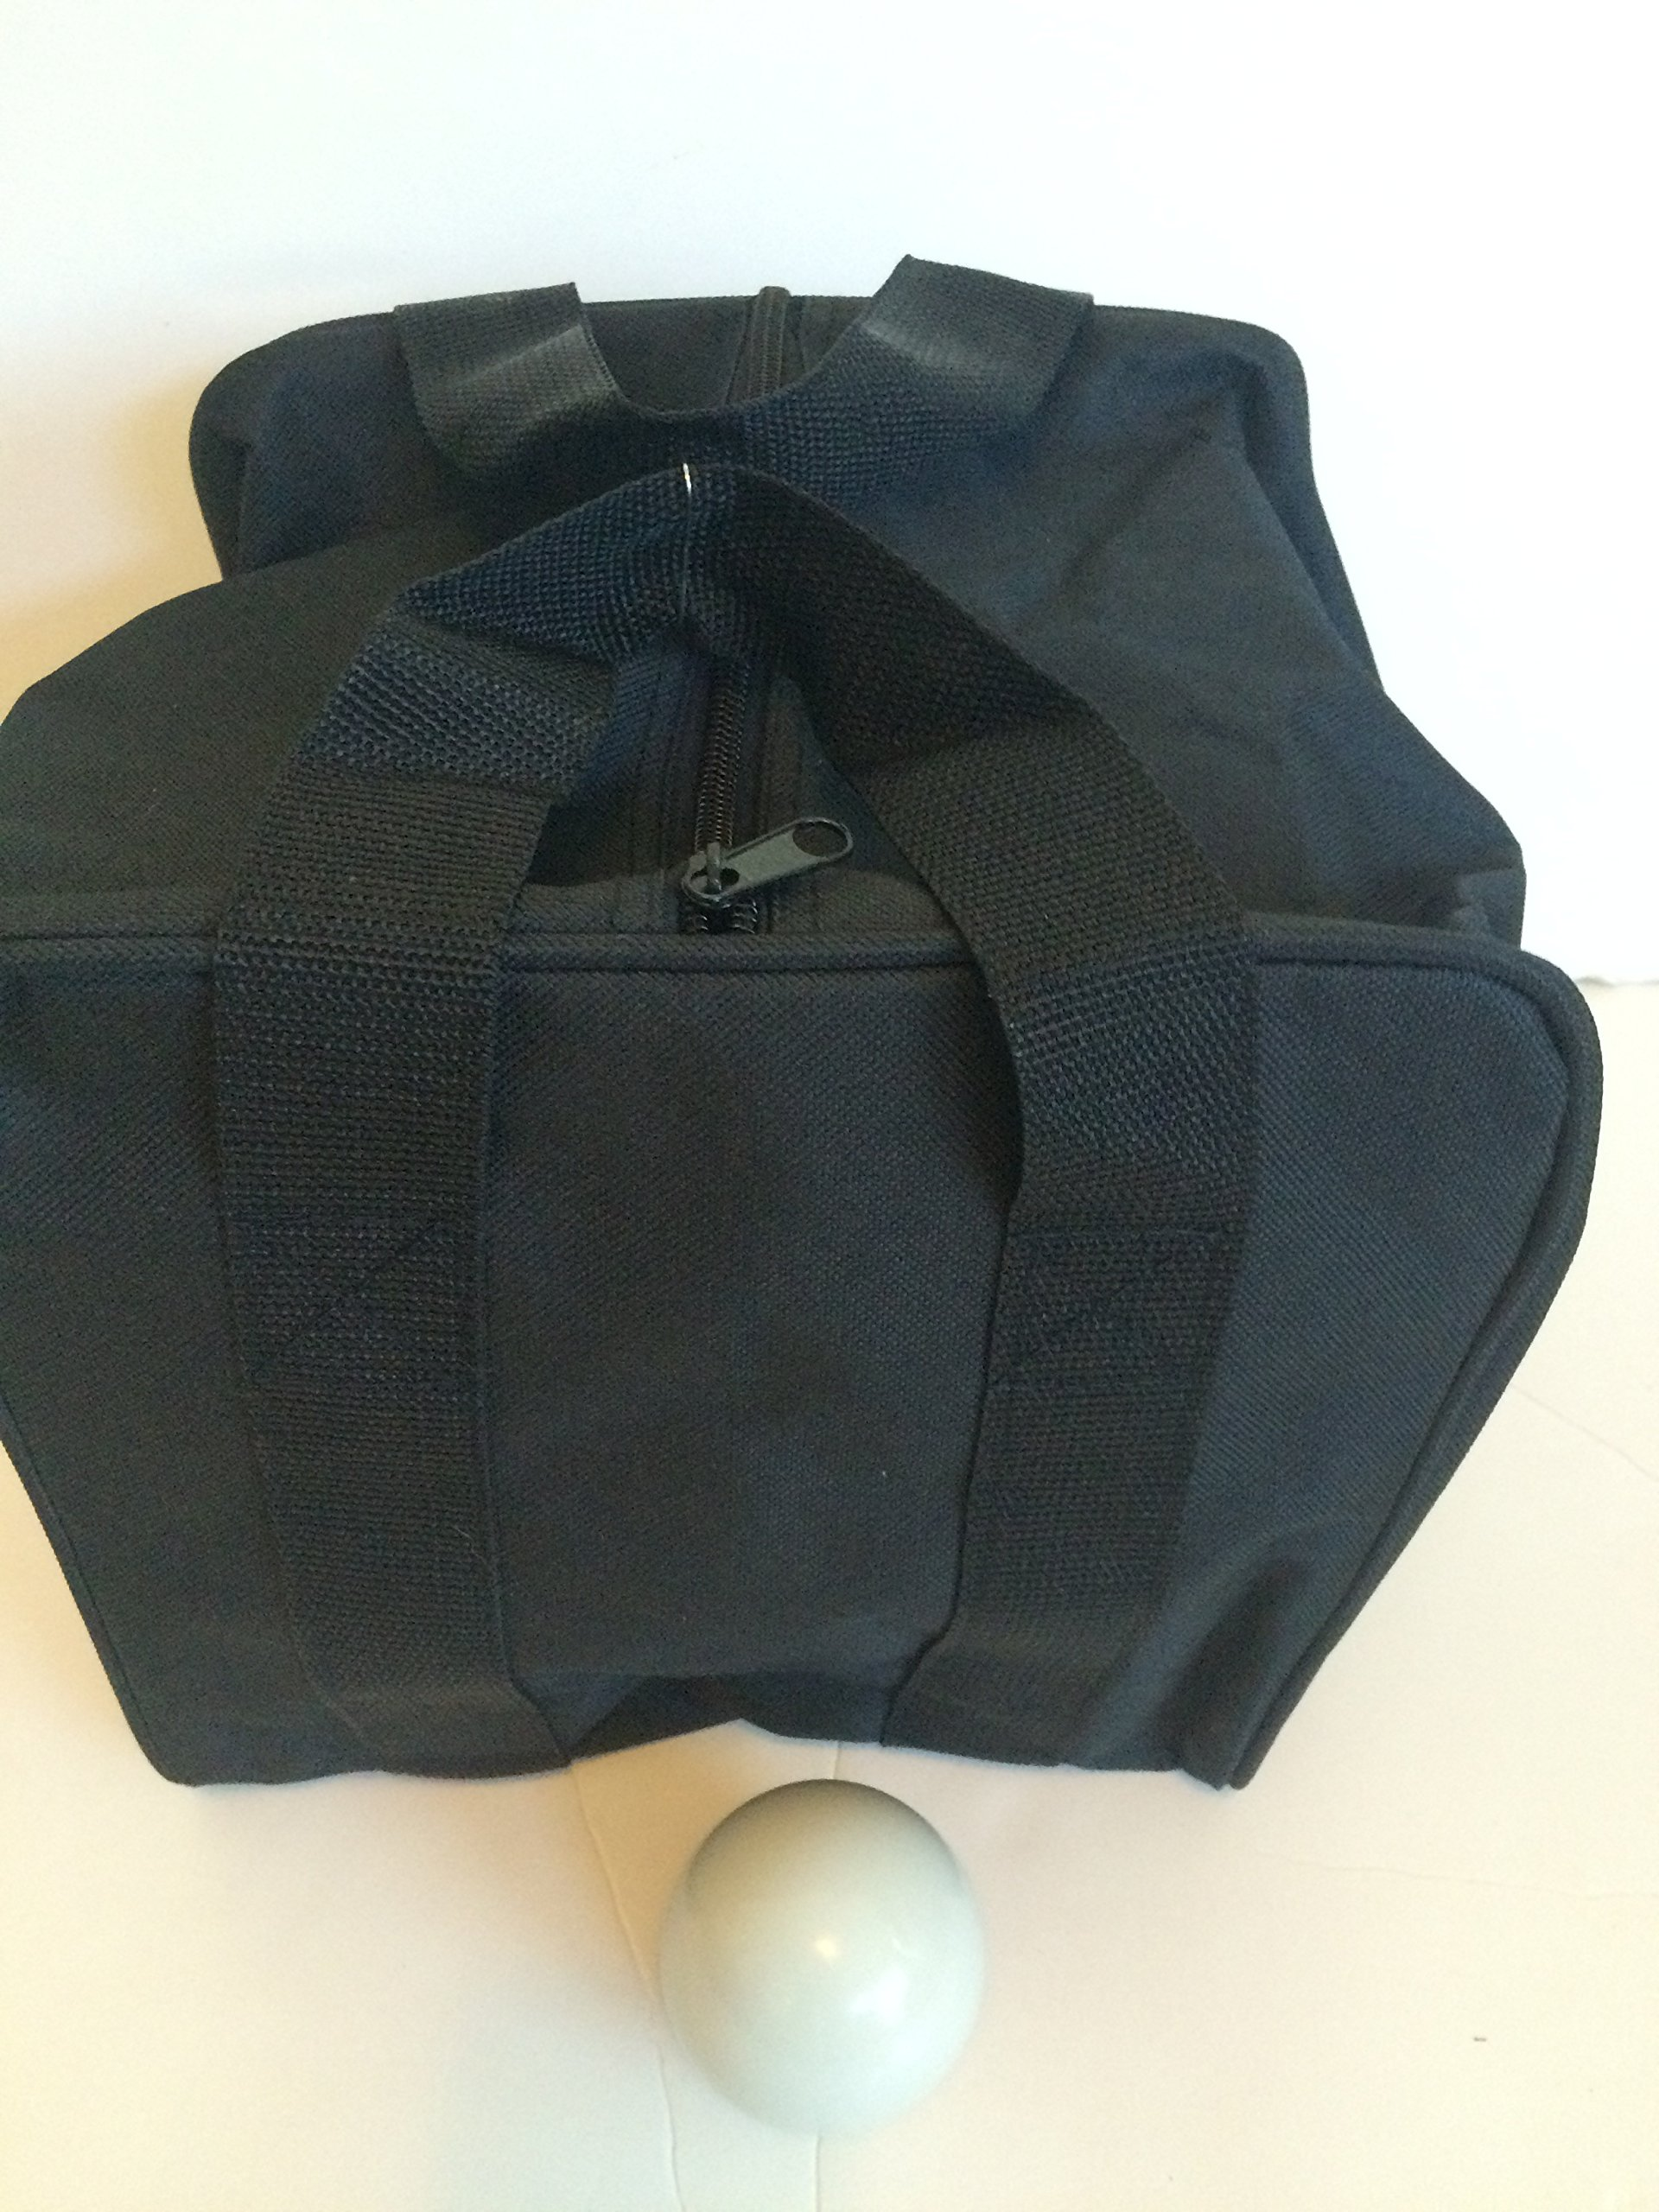 Unique Bocce Accessories Package - Extra Heavy Duty Nylon Bocce Bag (Black with Black Handles) and White pallina